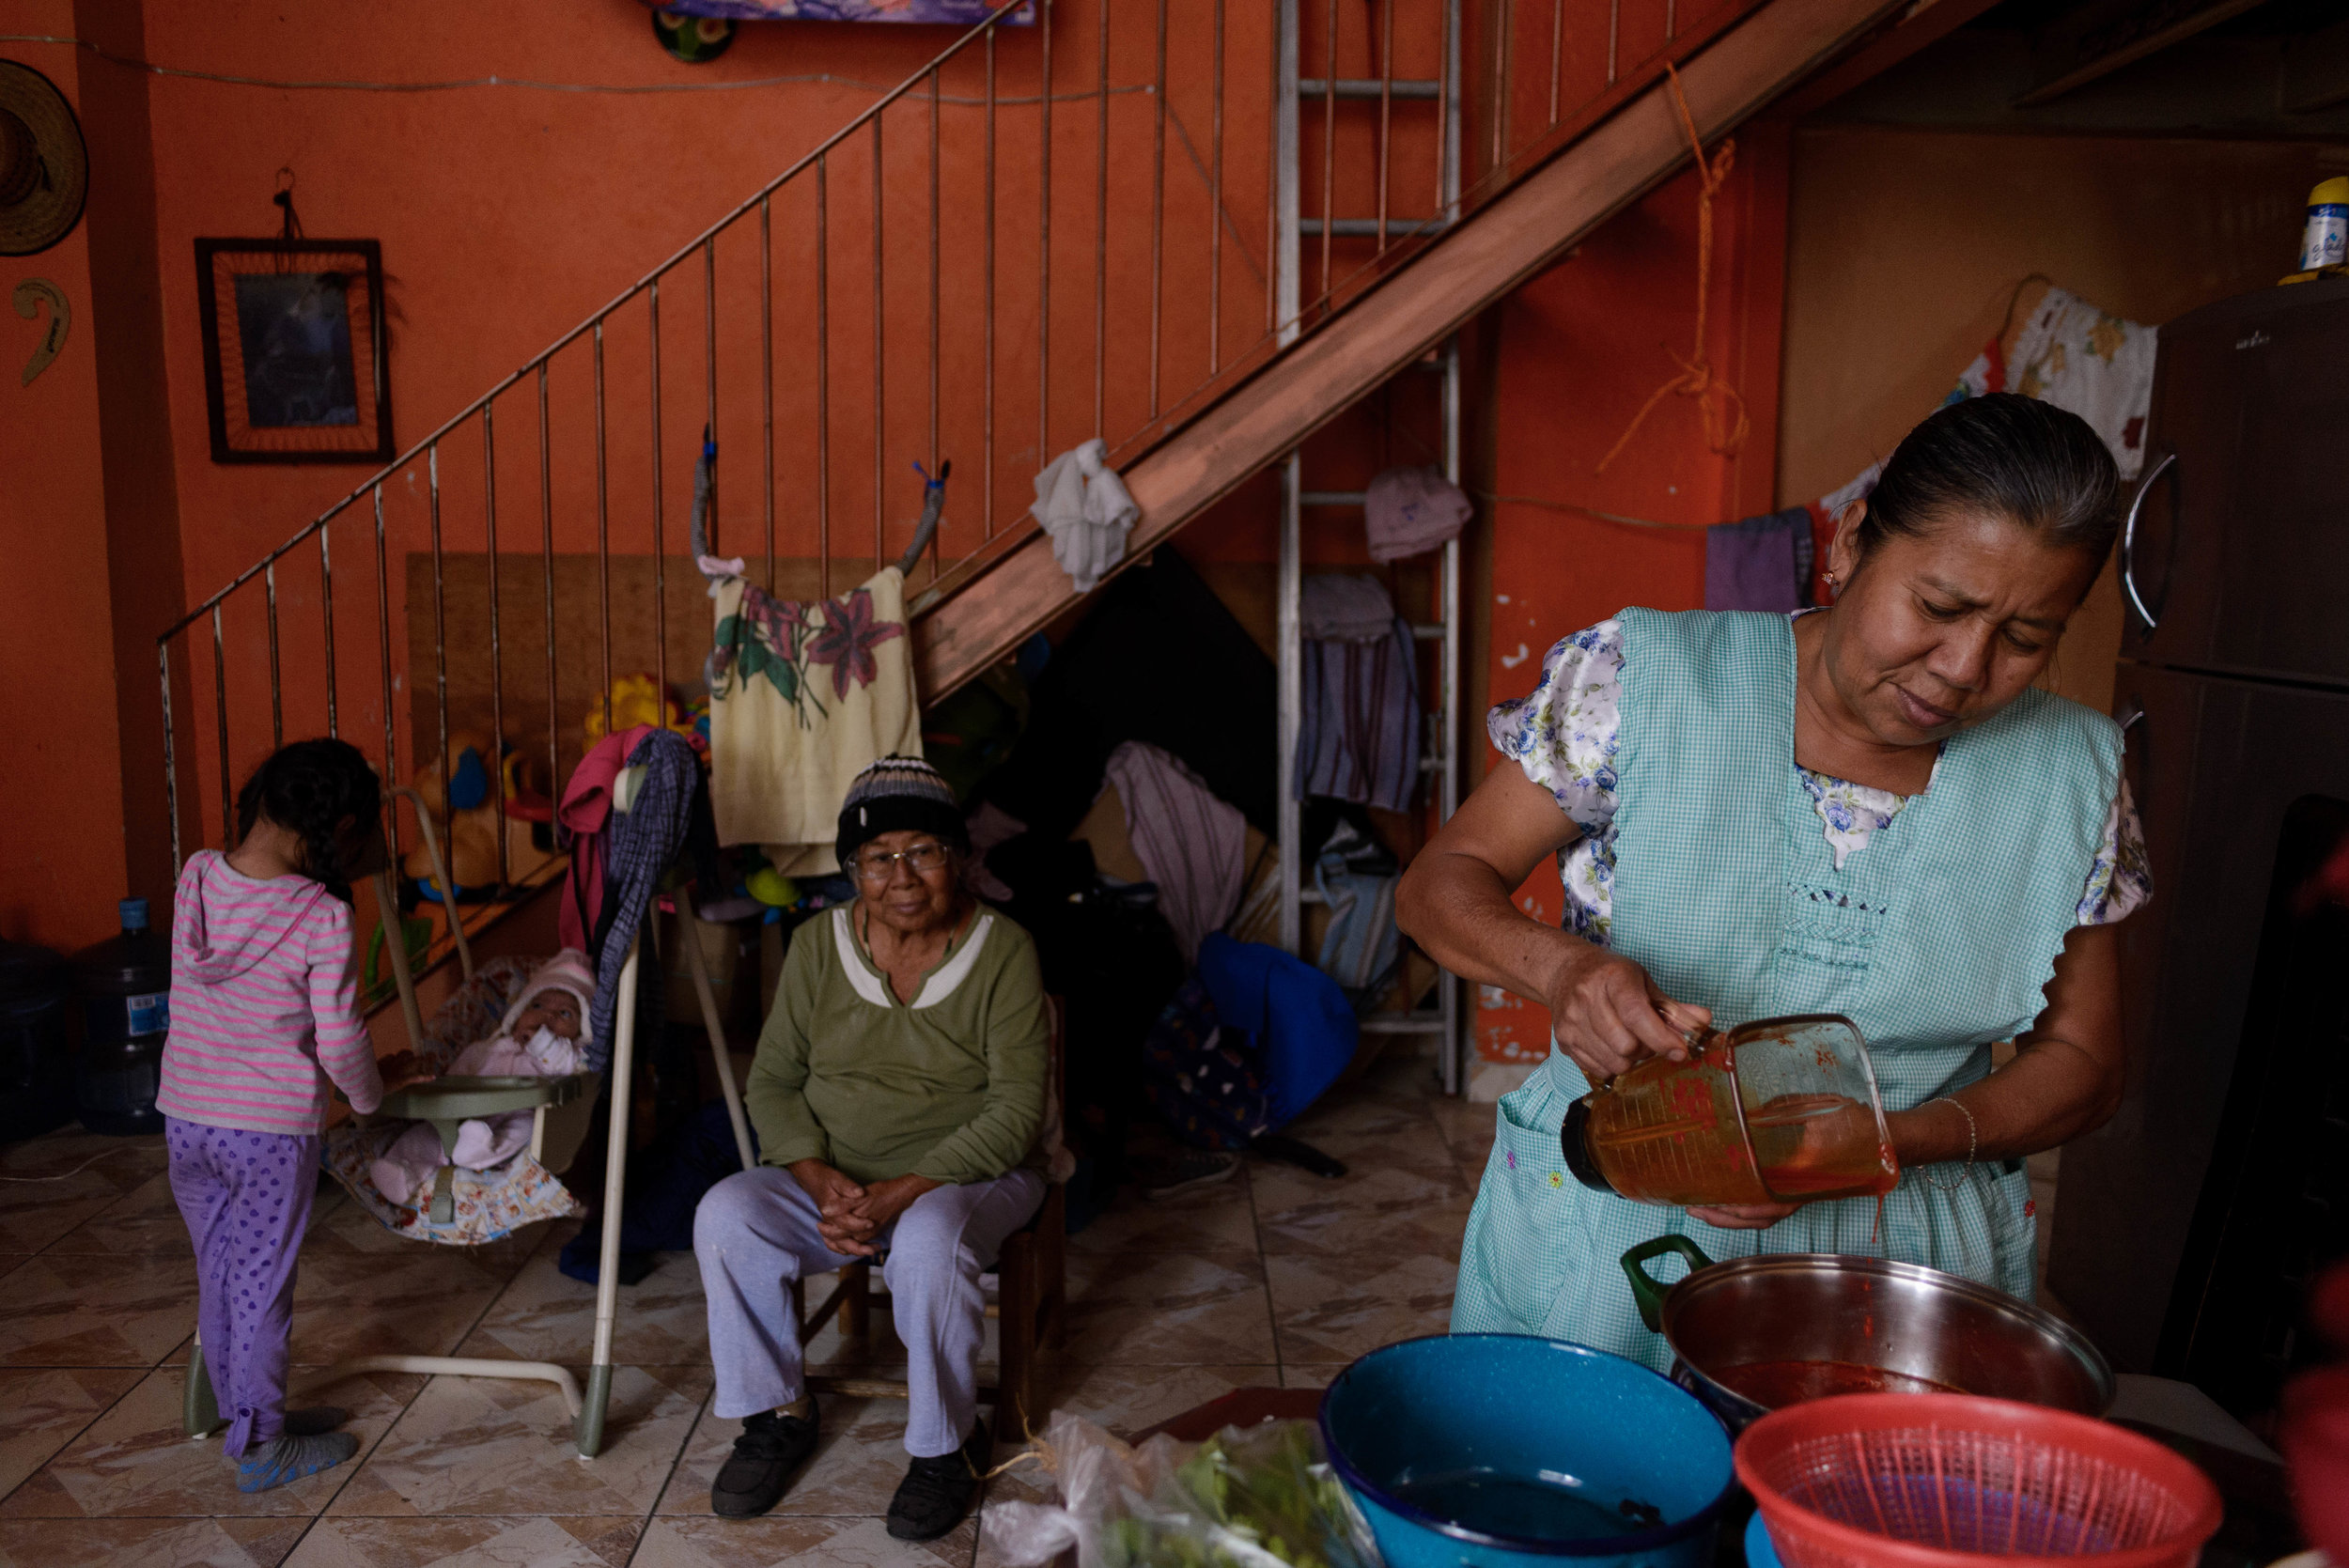 Hermenegilda prepares lunch for her family while 3 year old Merliza plays with her younger cousin and great-grandmother Agustina looks on at the scene.